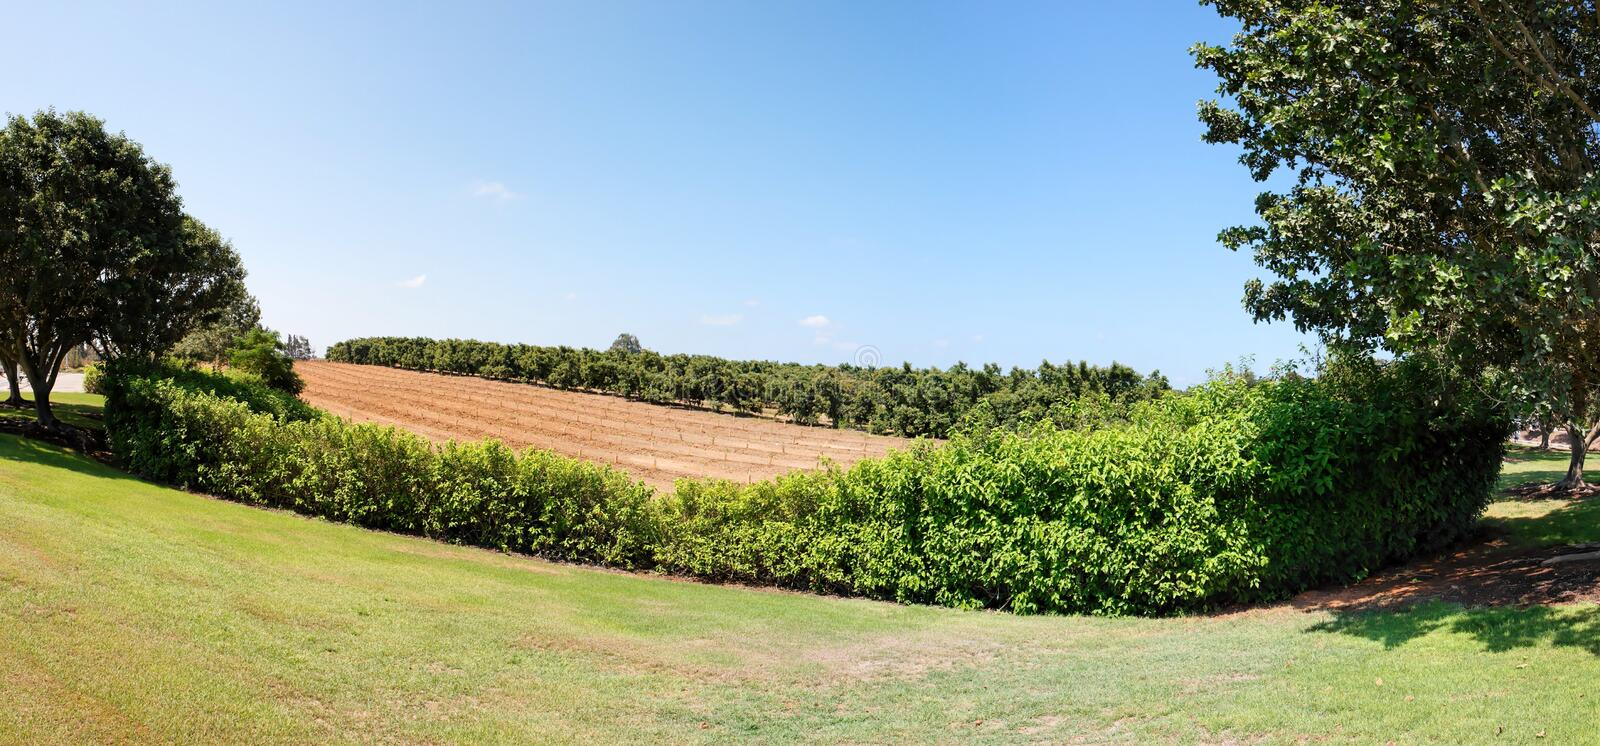 Download Small Trees In Nursery Garden Stock Image - Image: 10613075